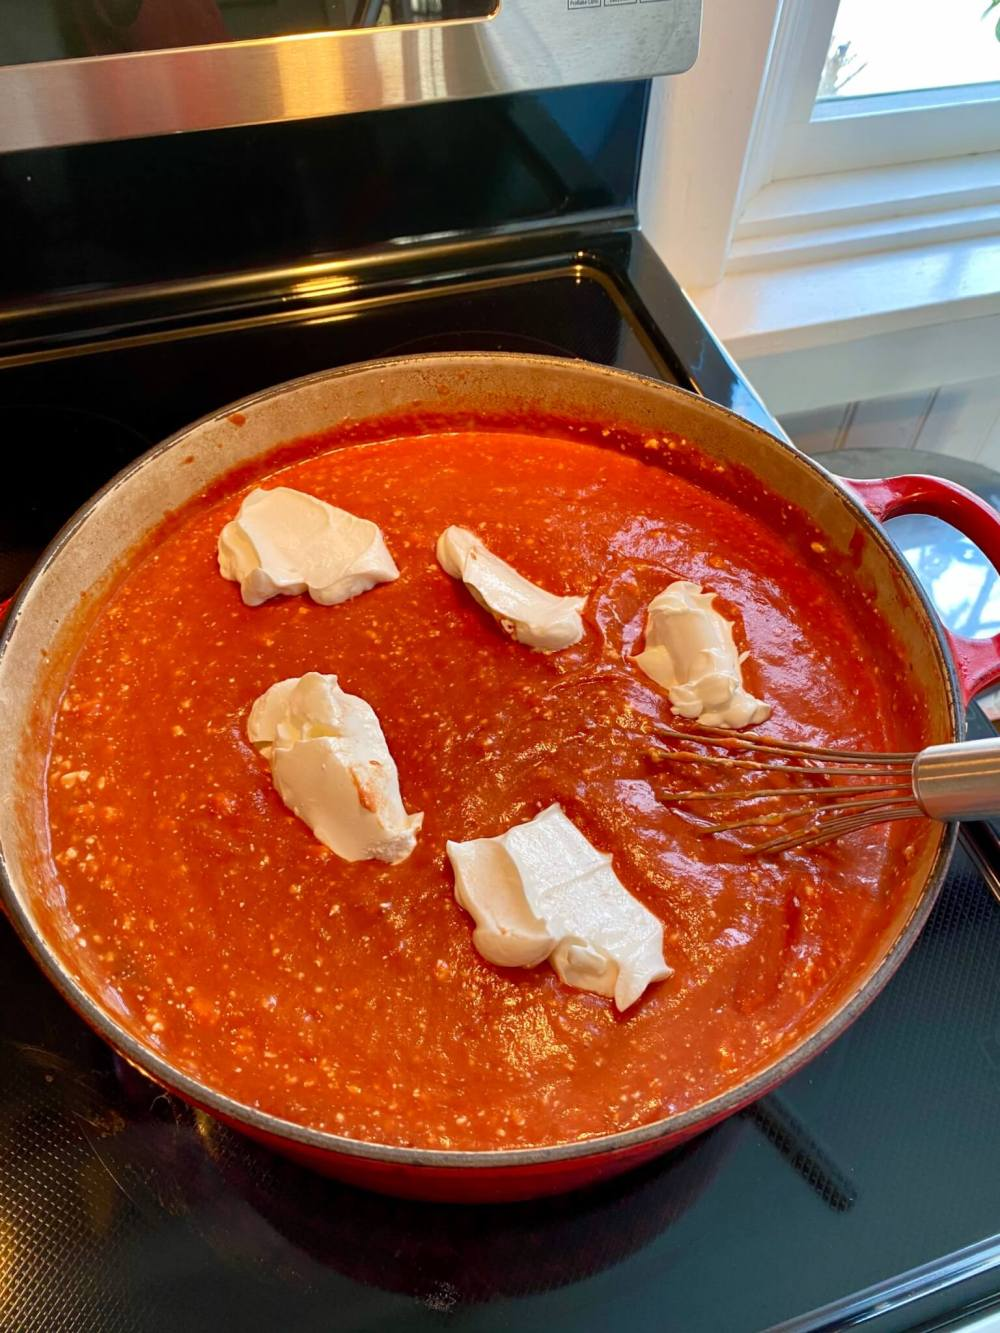 """Those familiar with Isaac's restaurants have likely heard of their signature soup, which has legions of devoted fans. The popular menu item is described as a """"creamy tomato soup given a zippy twist with shredded pepperjack cheese, garnished with croutons."""" The following copycat version adds an extra kick with hot sauce, although you could omit it if preferred."""